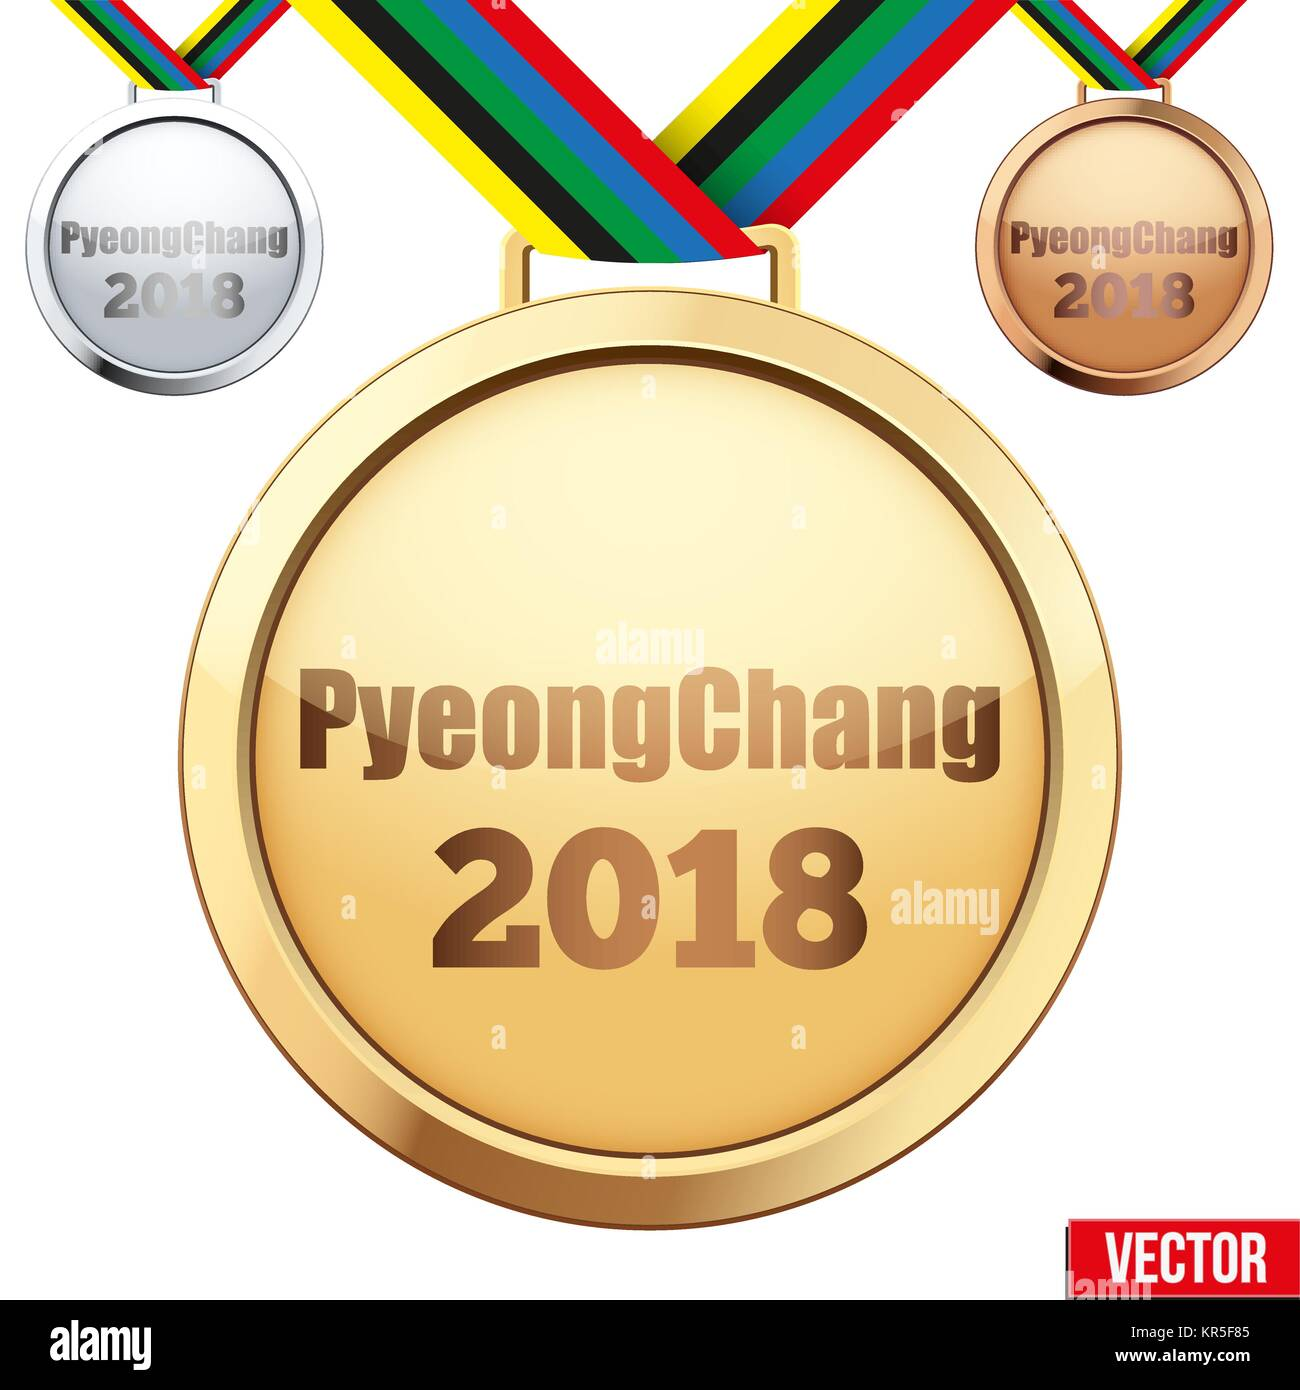 Set of medals with text PyeongChang 2018 - Stock Vector